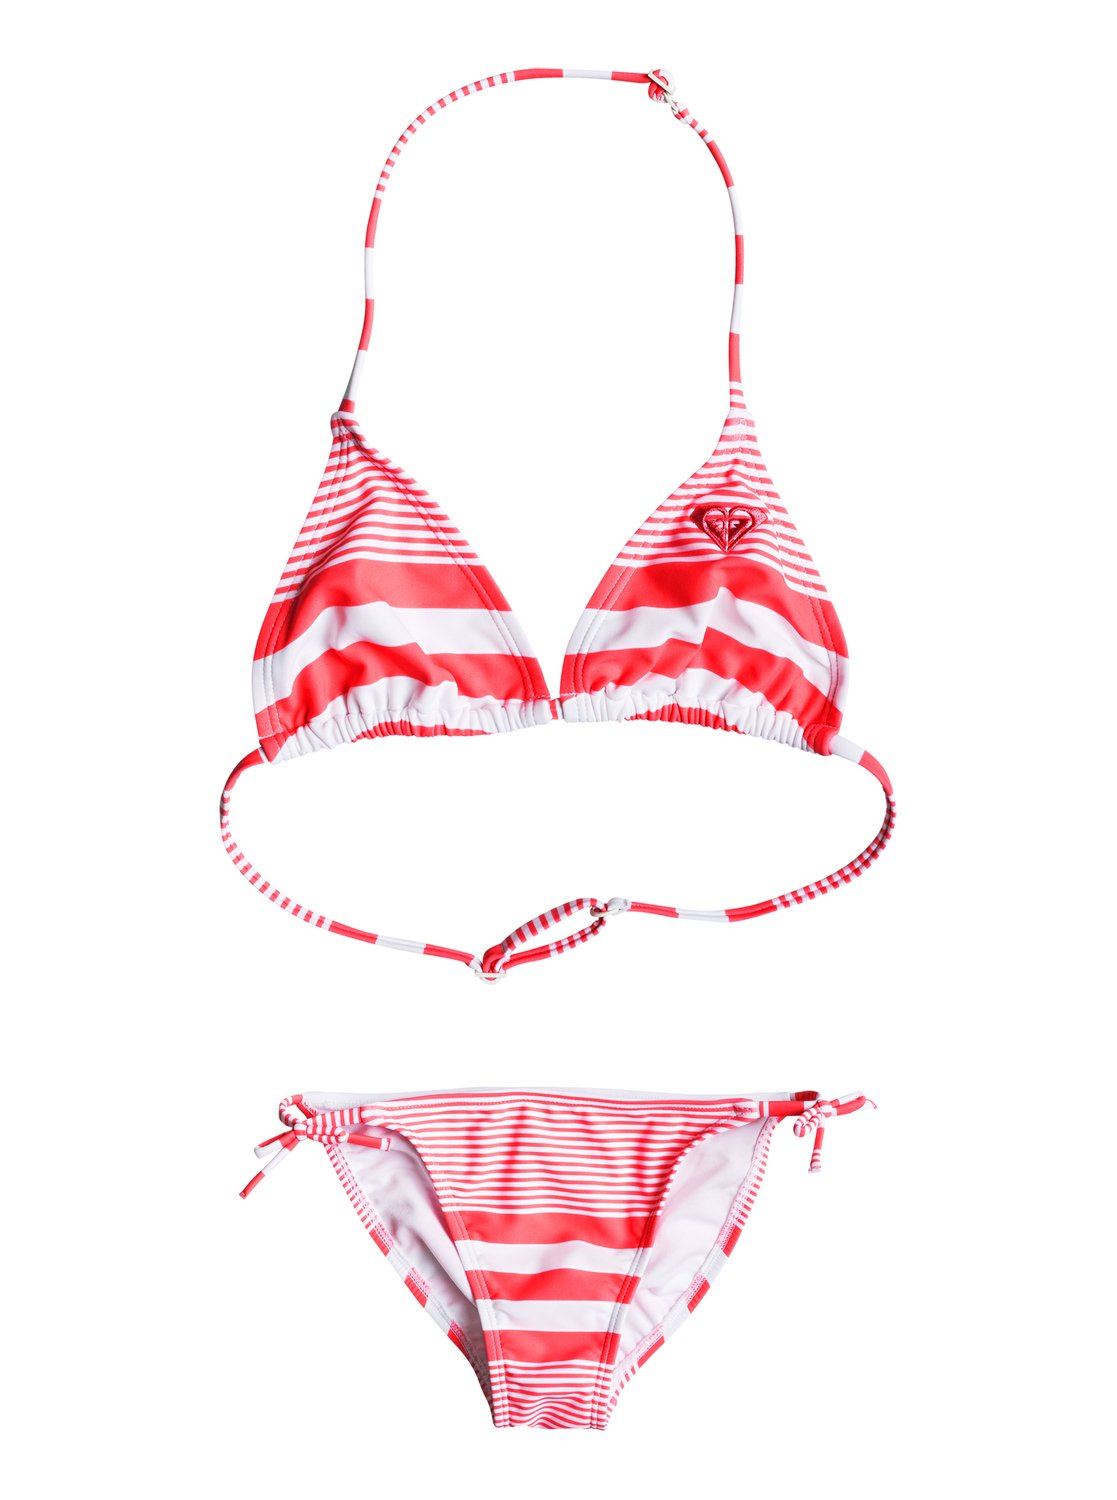 Dotsy ROXY - Ensemble de bikini triangle pour Fille - Roxy